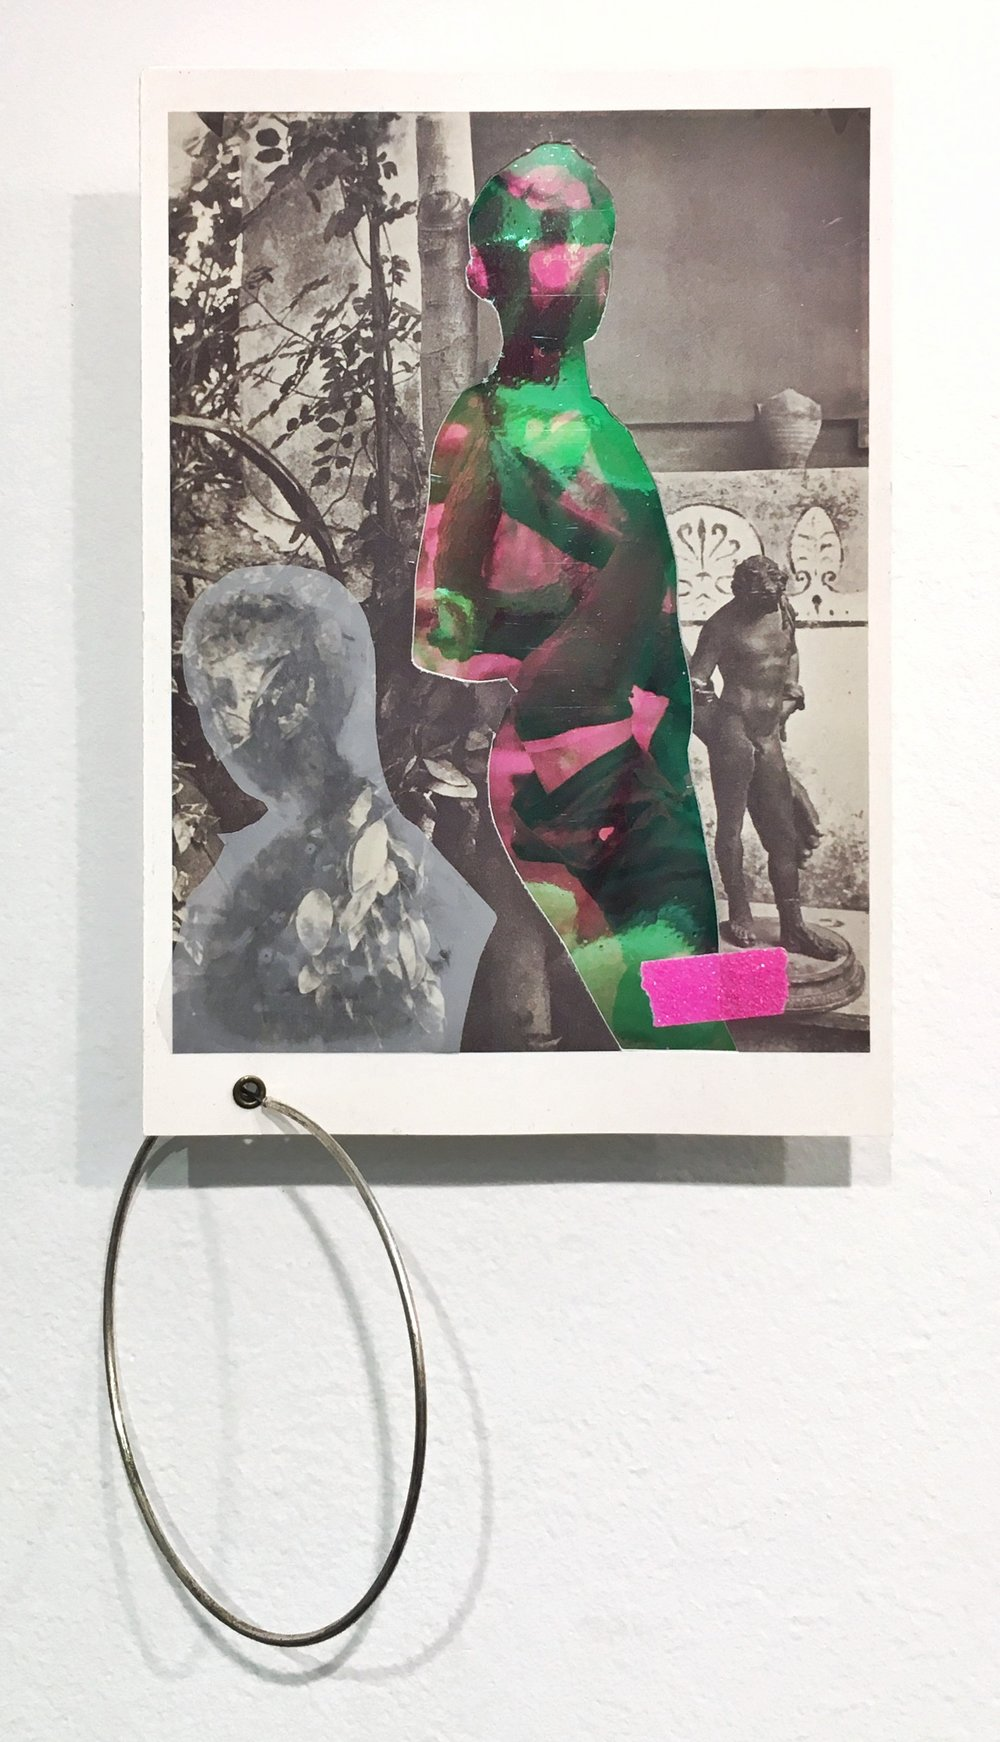 Untitled (Hang in there buddy), 2018, Collaged photographs, postcards, tape, vinyl, earring, and duralar, 8 x 4 inches (variable).